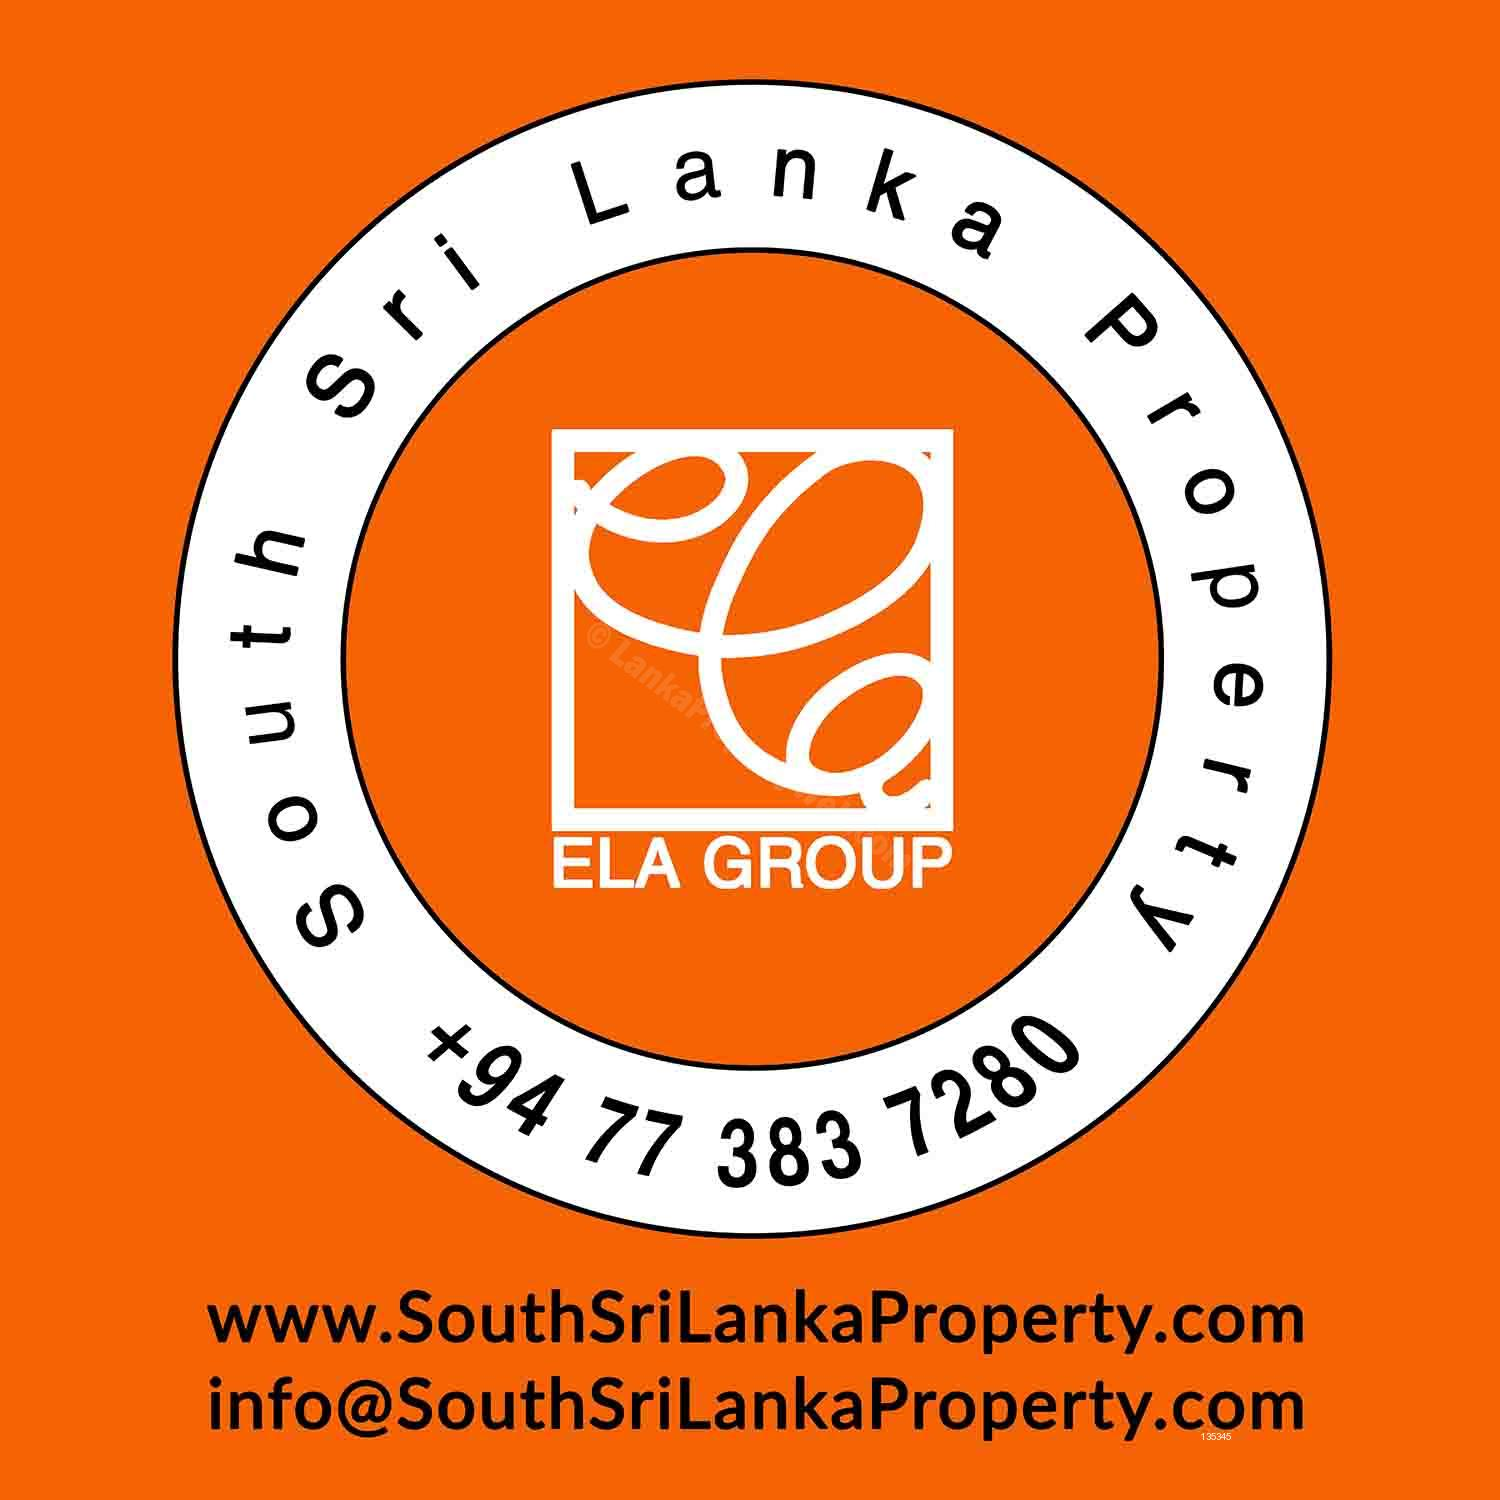 Galle, Matara, tangalle, habaraduwa, ahangama, hik estate agents for Sales, Rentals, Commercial Property,  Land.